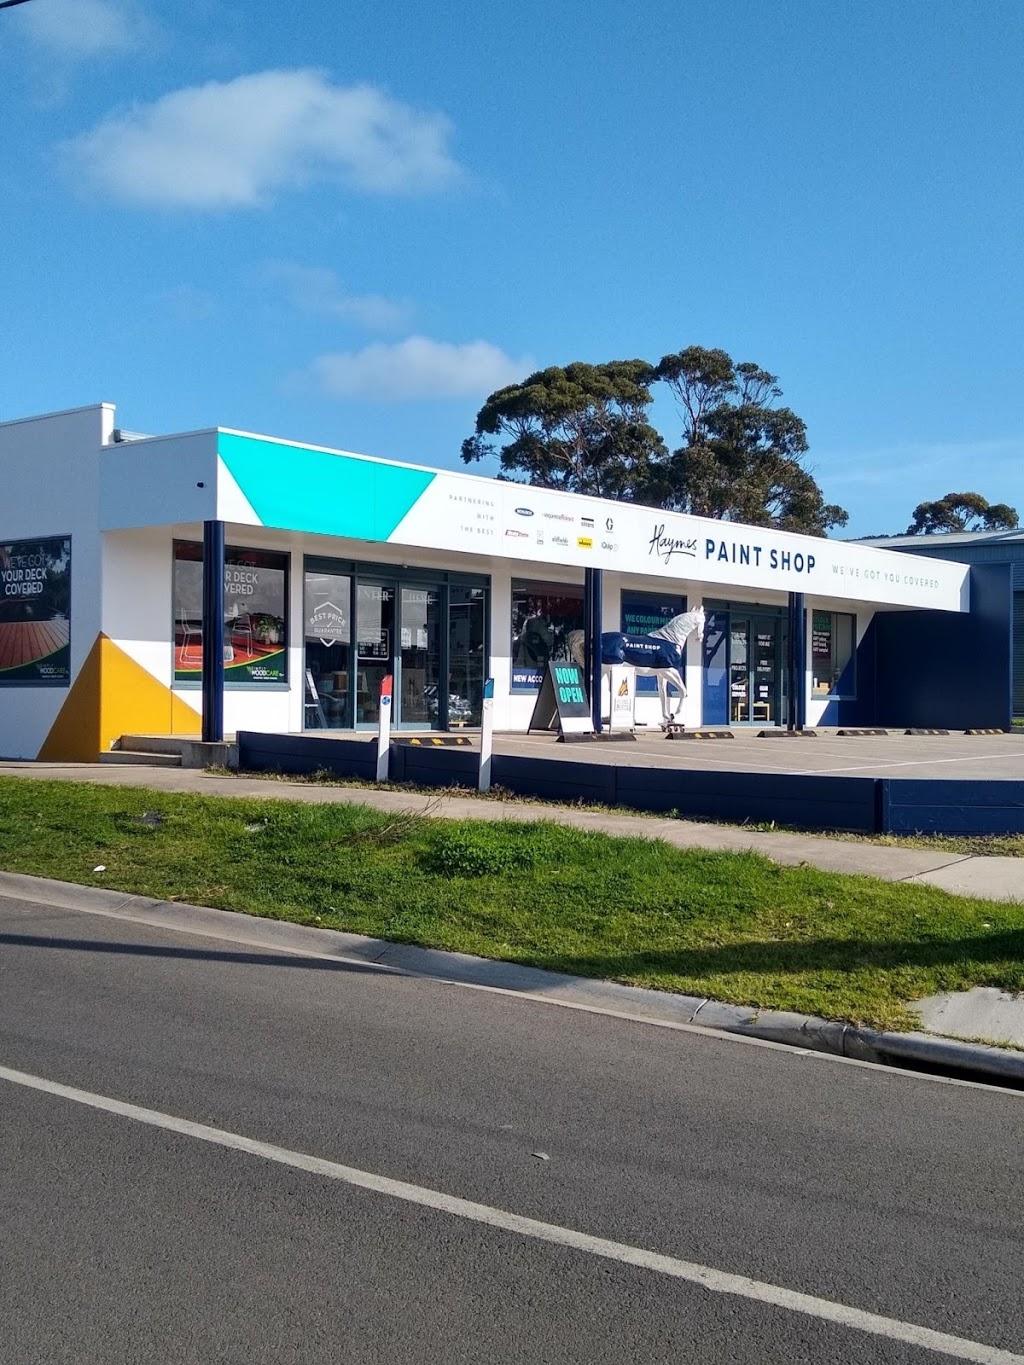 Haymes Paint Shop Cowes | painter | 215 Settlement Rd, Cowes VIC 3922, Australia | 0359522522 OR +61 3 5952 2522